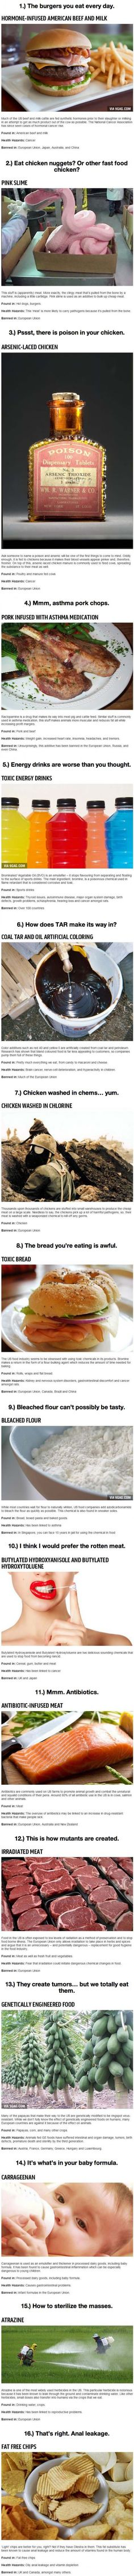 Here Are 16 Foods So Bad For You They're BANNED In Some Countries. But Not America.